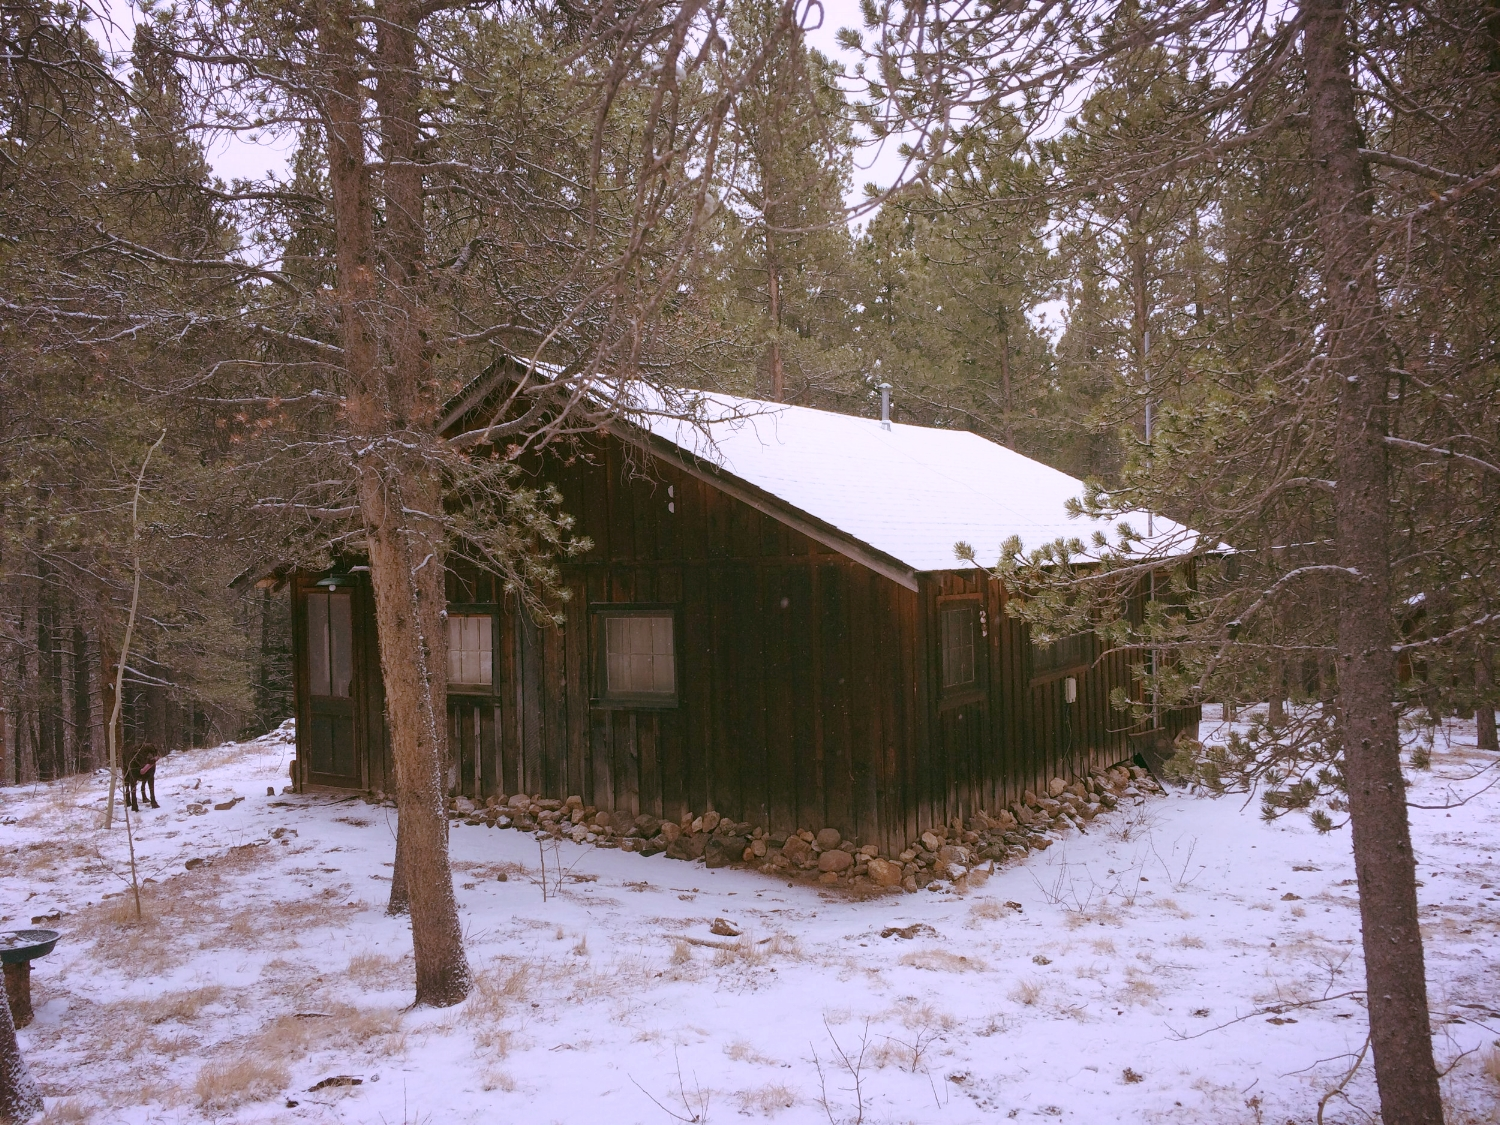 A cabin in the mountains - a perfect place to rest and reflect.